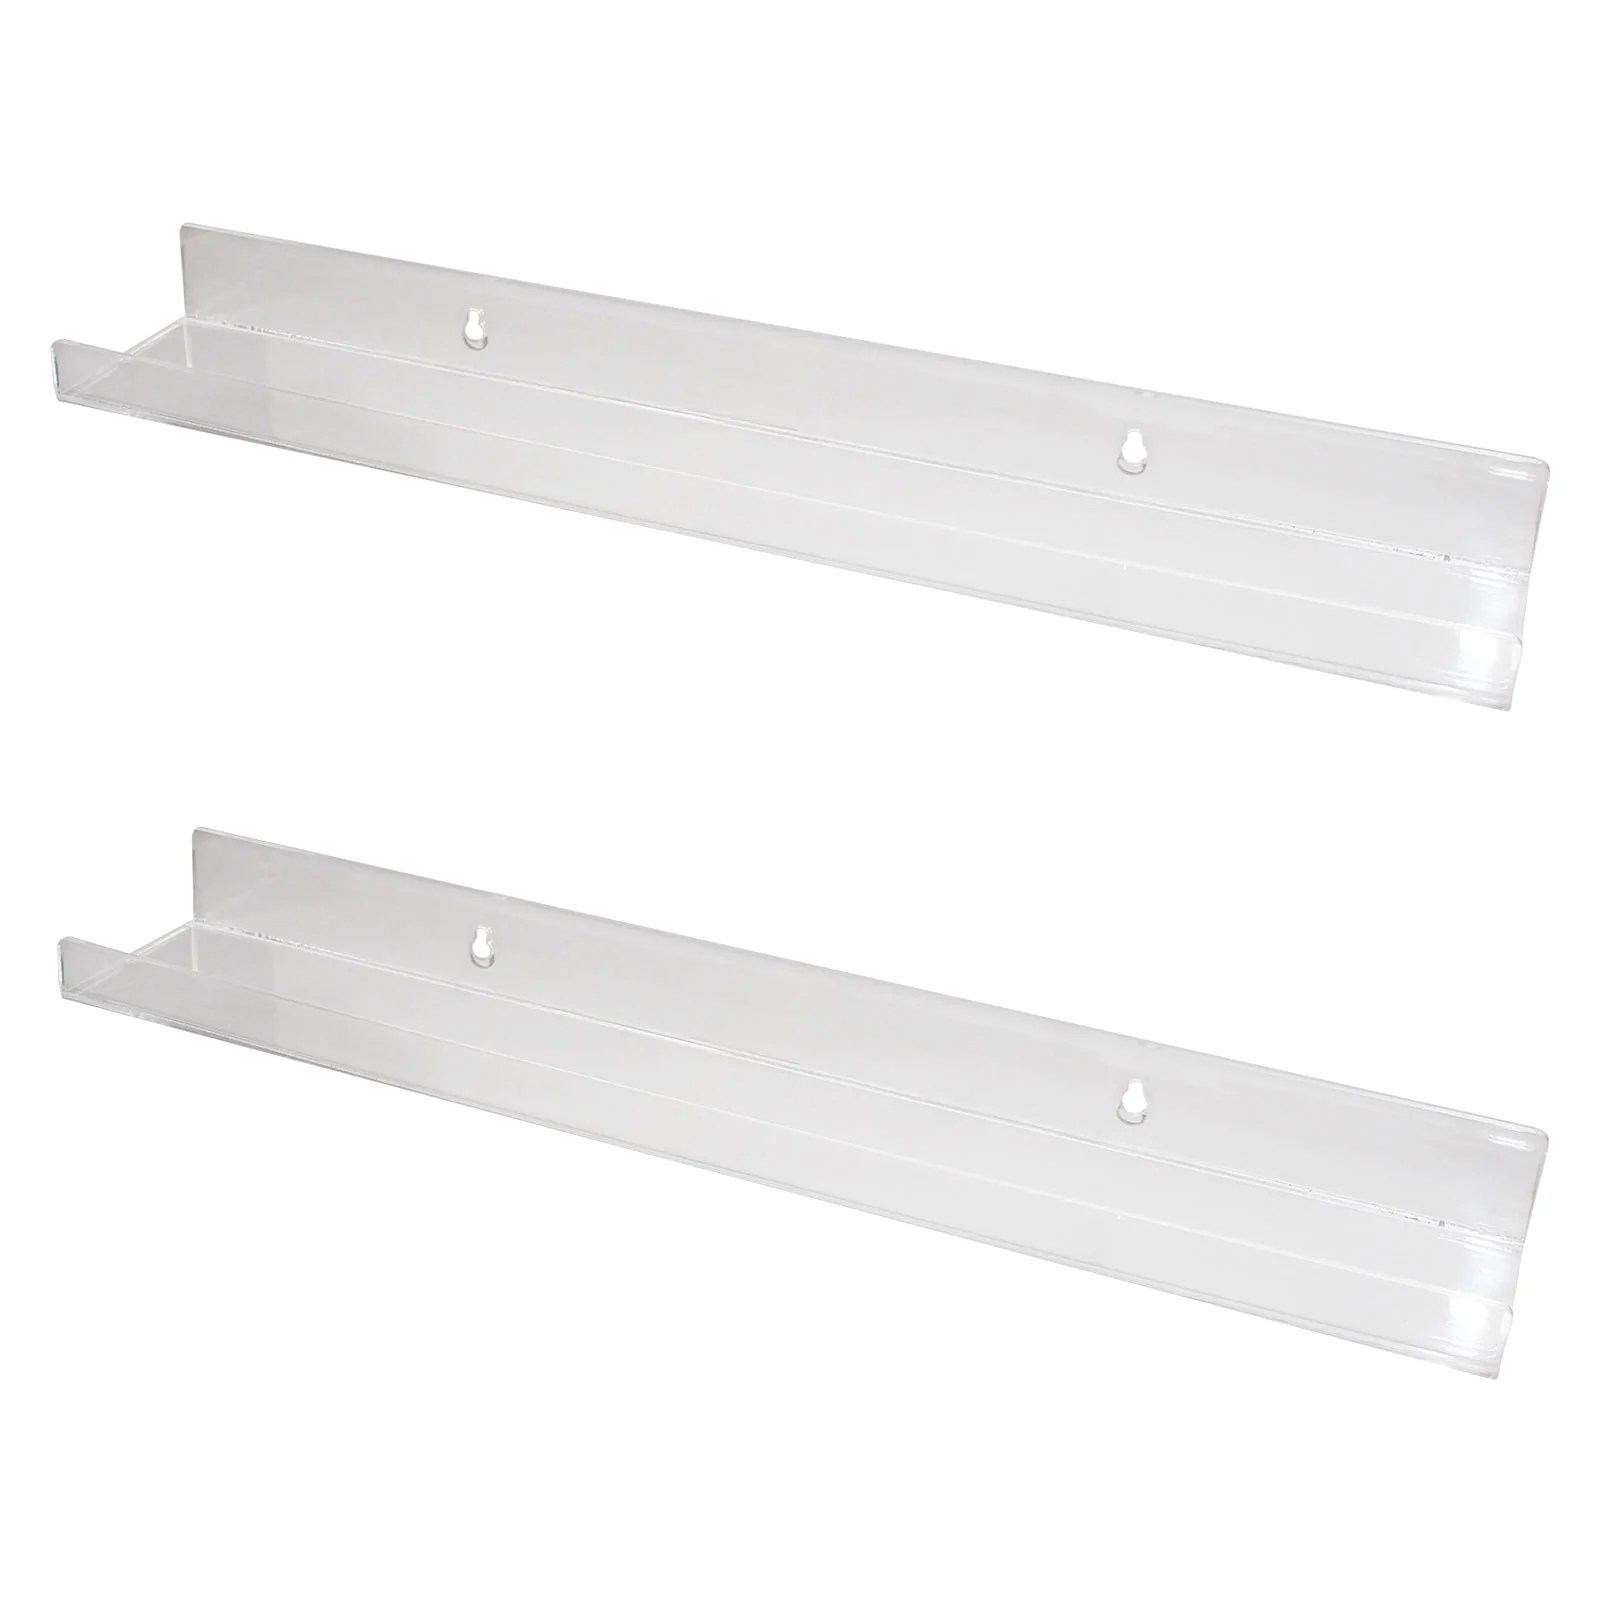 Kurtzy 2 Piece Clear Acrylic Wall Mounted Bookshelf Home